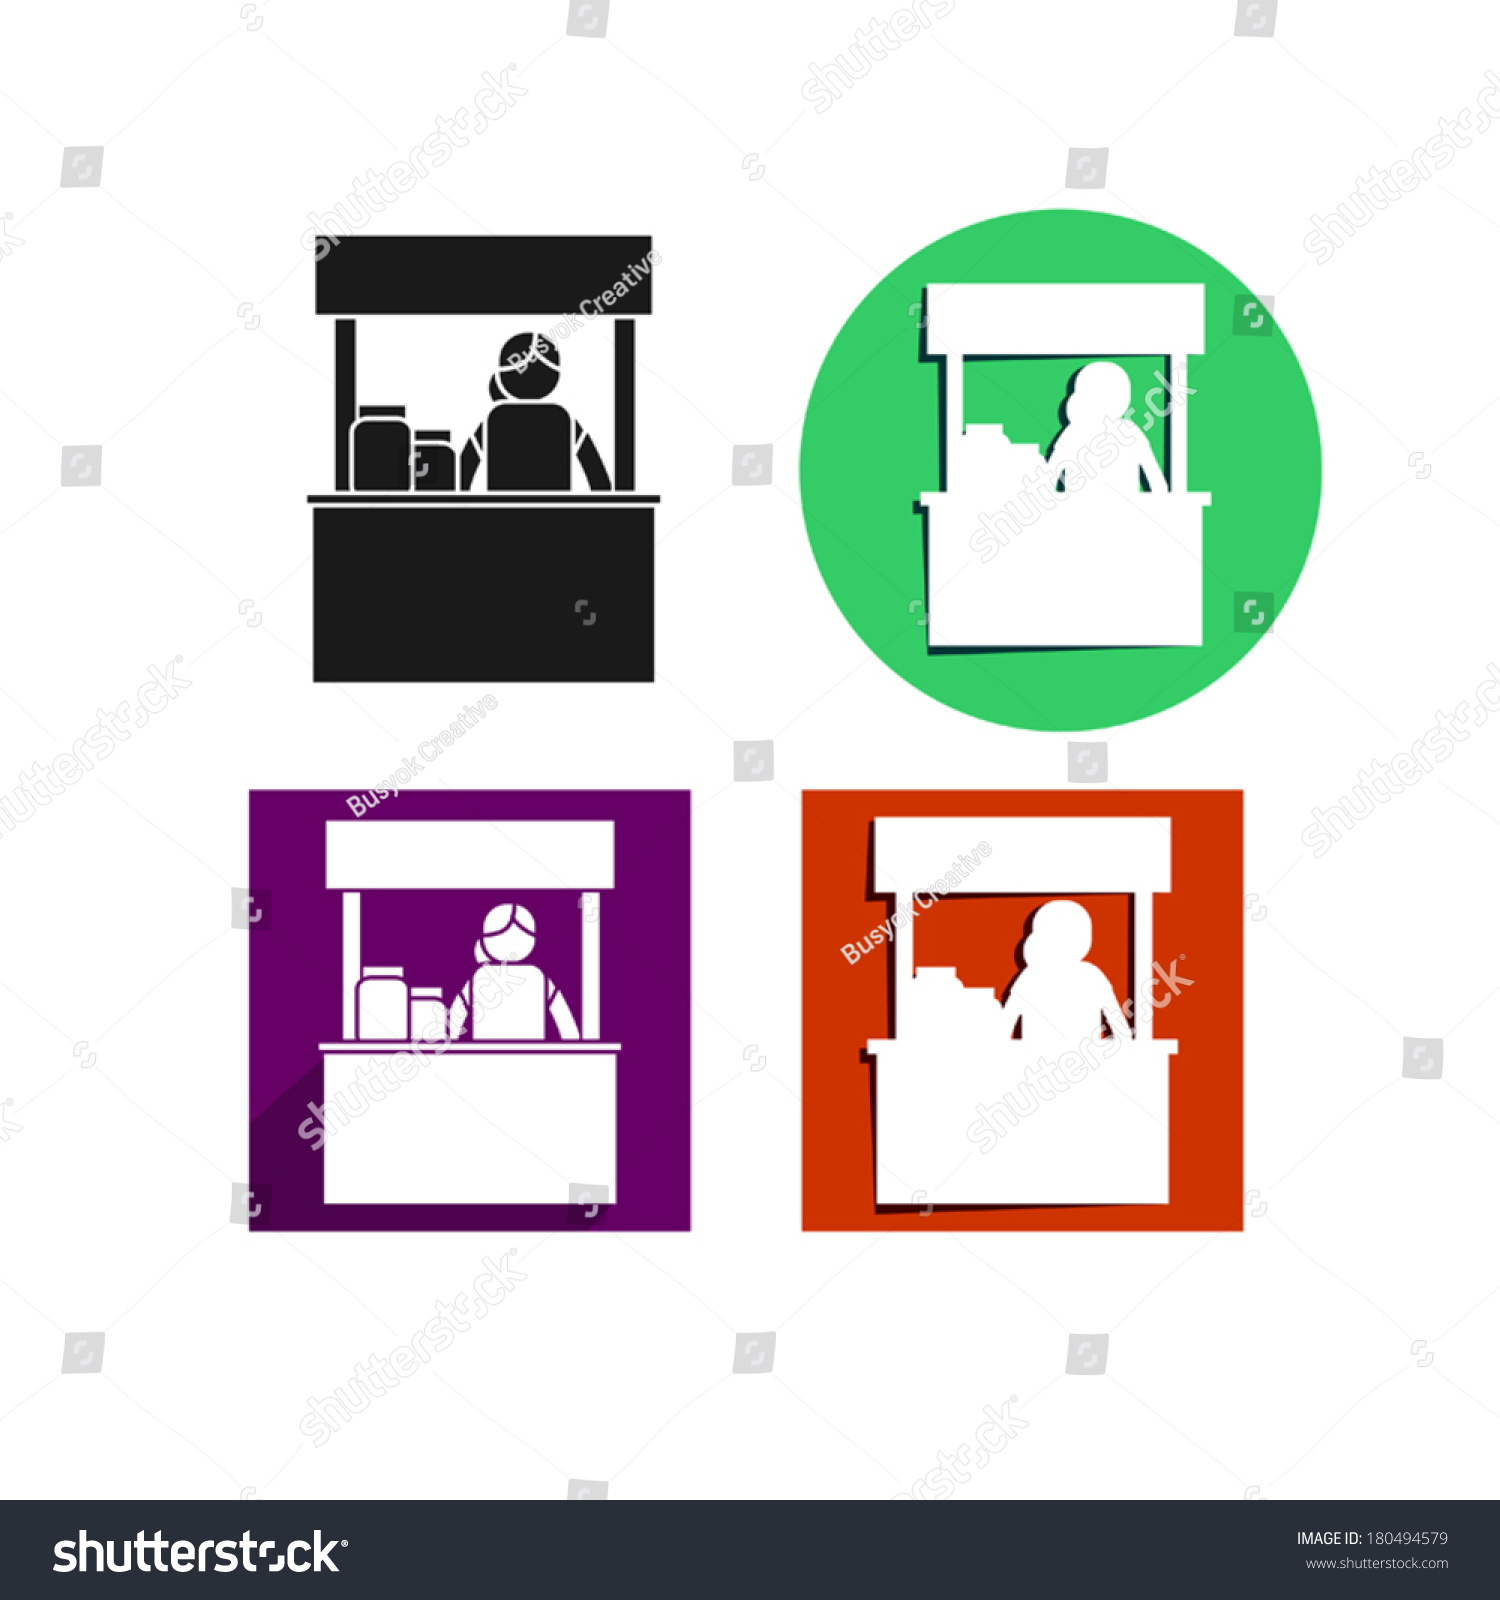 Exhibition Stall Icon : Food kiosk sign icon set stock vector shutterstock